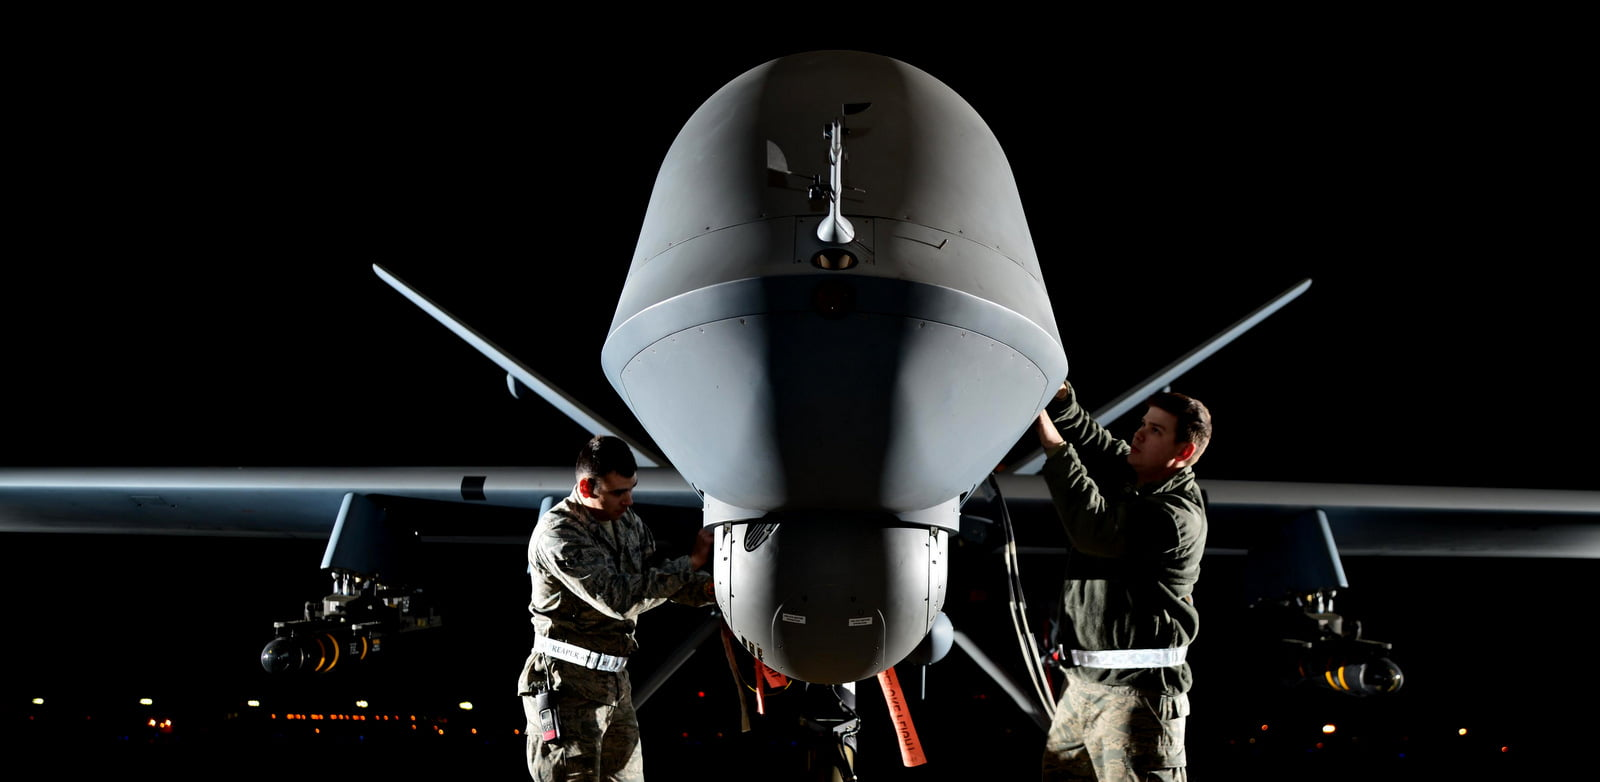 An Air Force RPA reconnaissance drone is retrofitted for use in attack squadron. (Photo: U.S. Air Force)